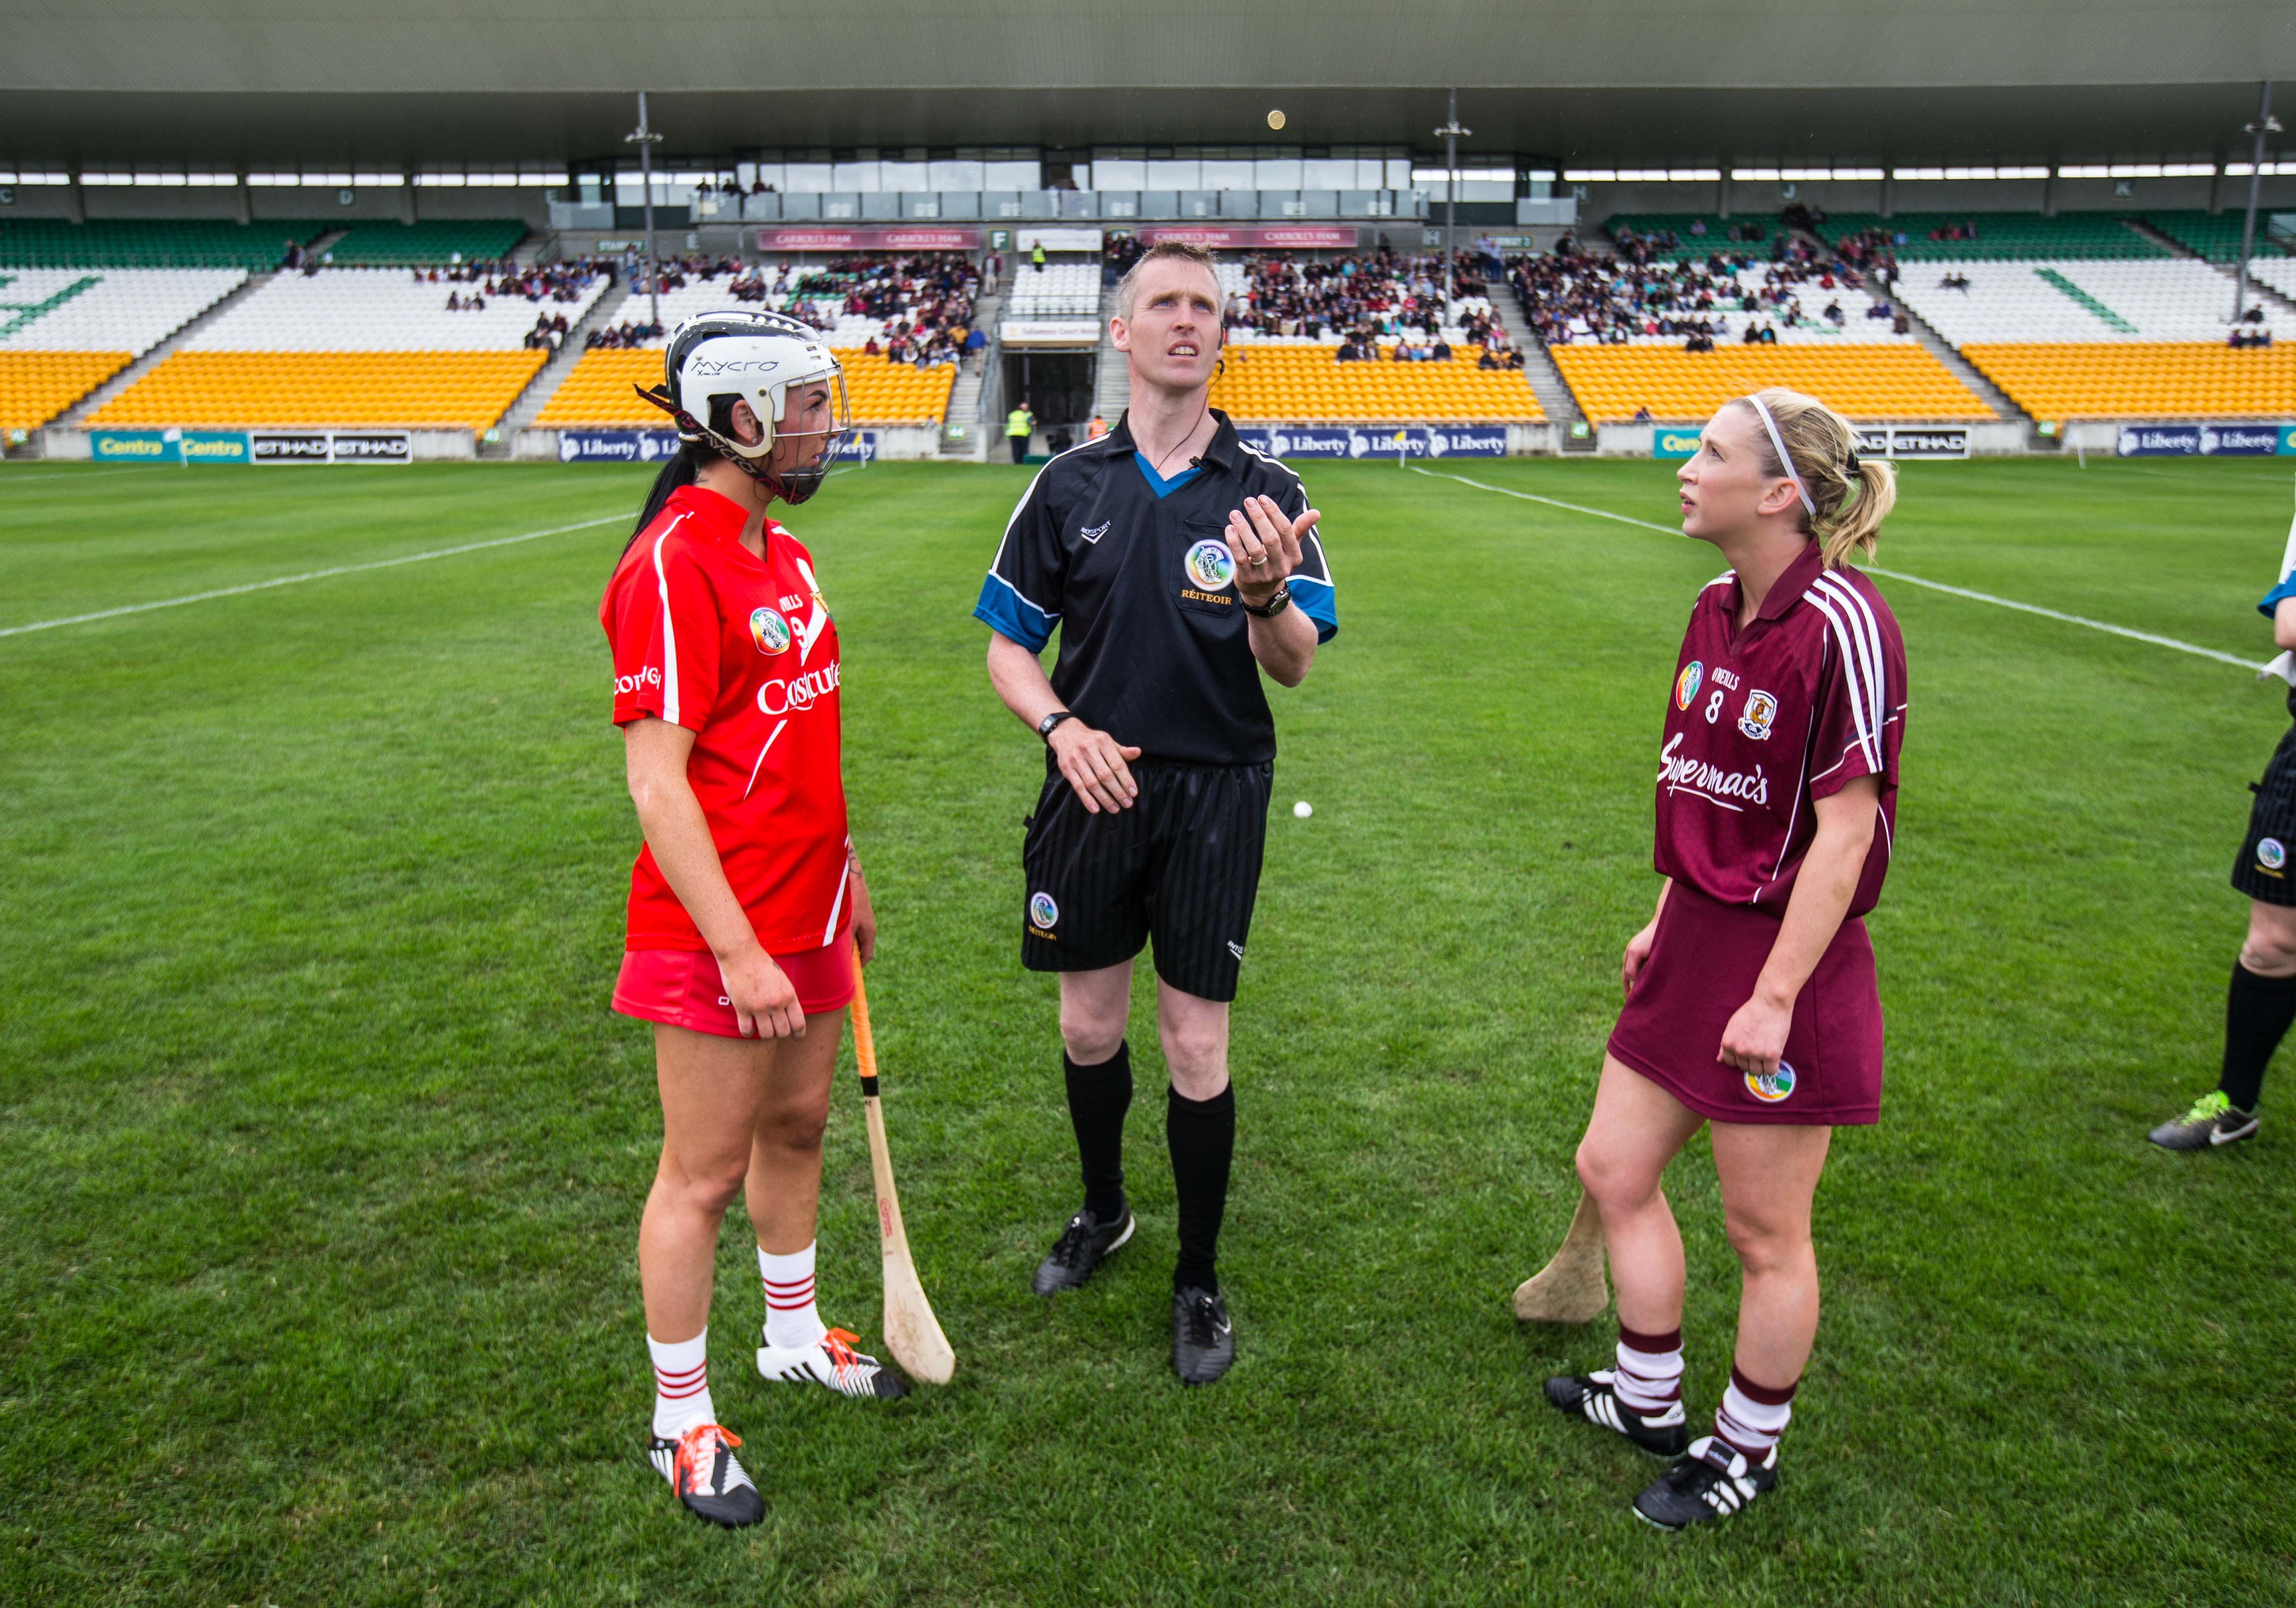 REPRO FREE***PRESS RELEASE NO REPRODUCTION FEE*** Liberty Insurance Camogie Championship Round 1, OÕConnor Park, Tullamore, Offaly 20/6/2015 Galway vs Cork Captains Niamh Kilkenny of Galway and Ashling Thompson of Cork with referee Ray Kelly during the coin toss Mandatory Credit ©INPHO/Cathal Noonan